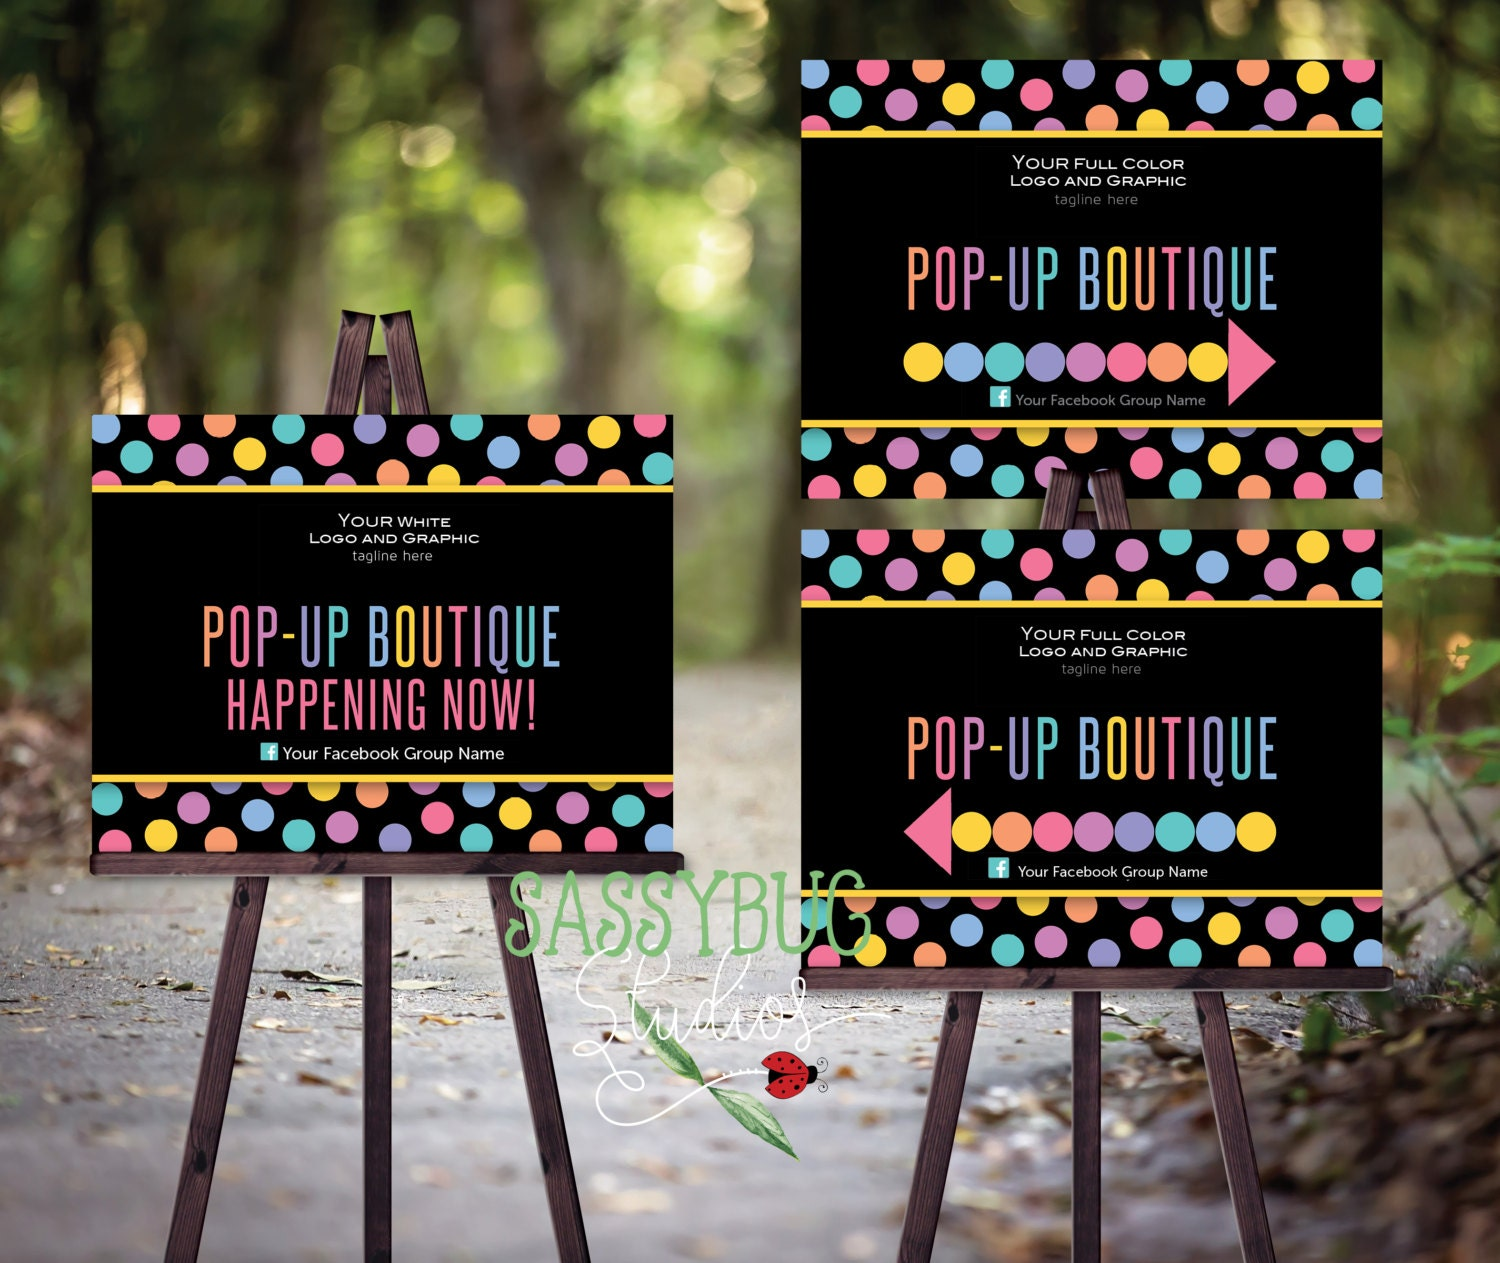 how to set up boutique